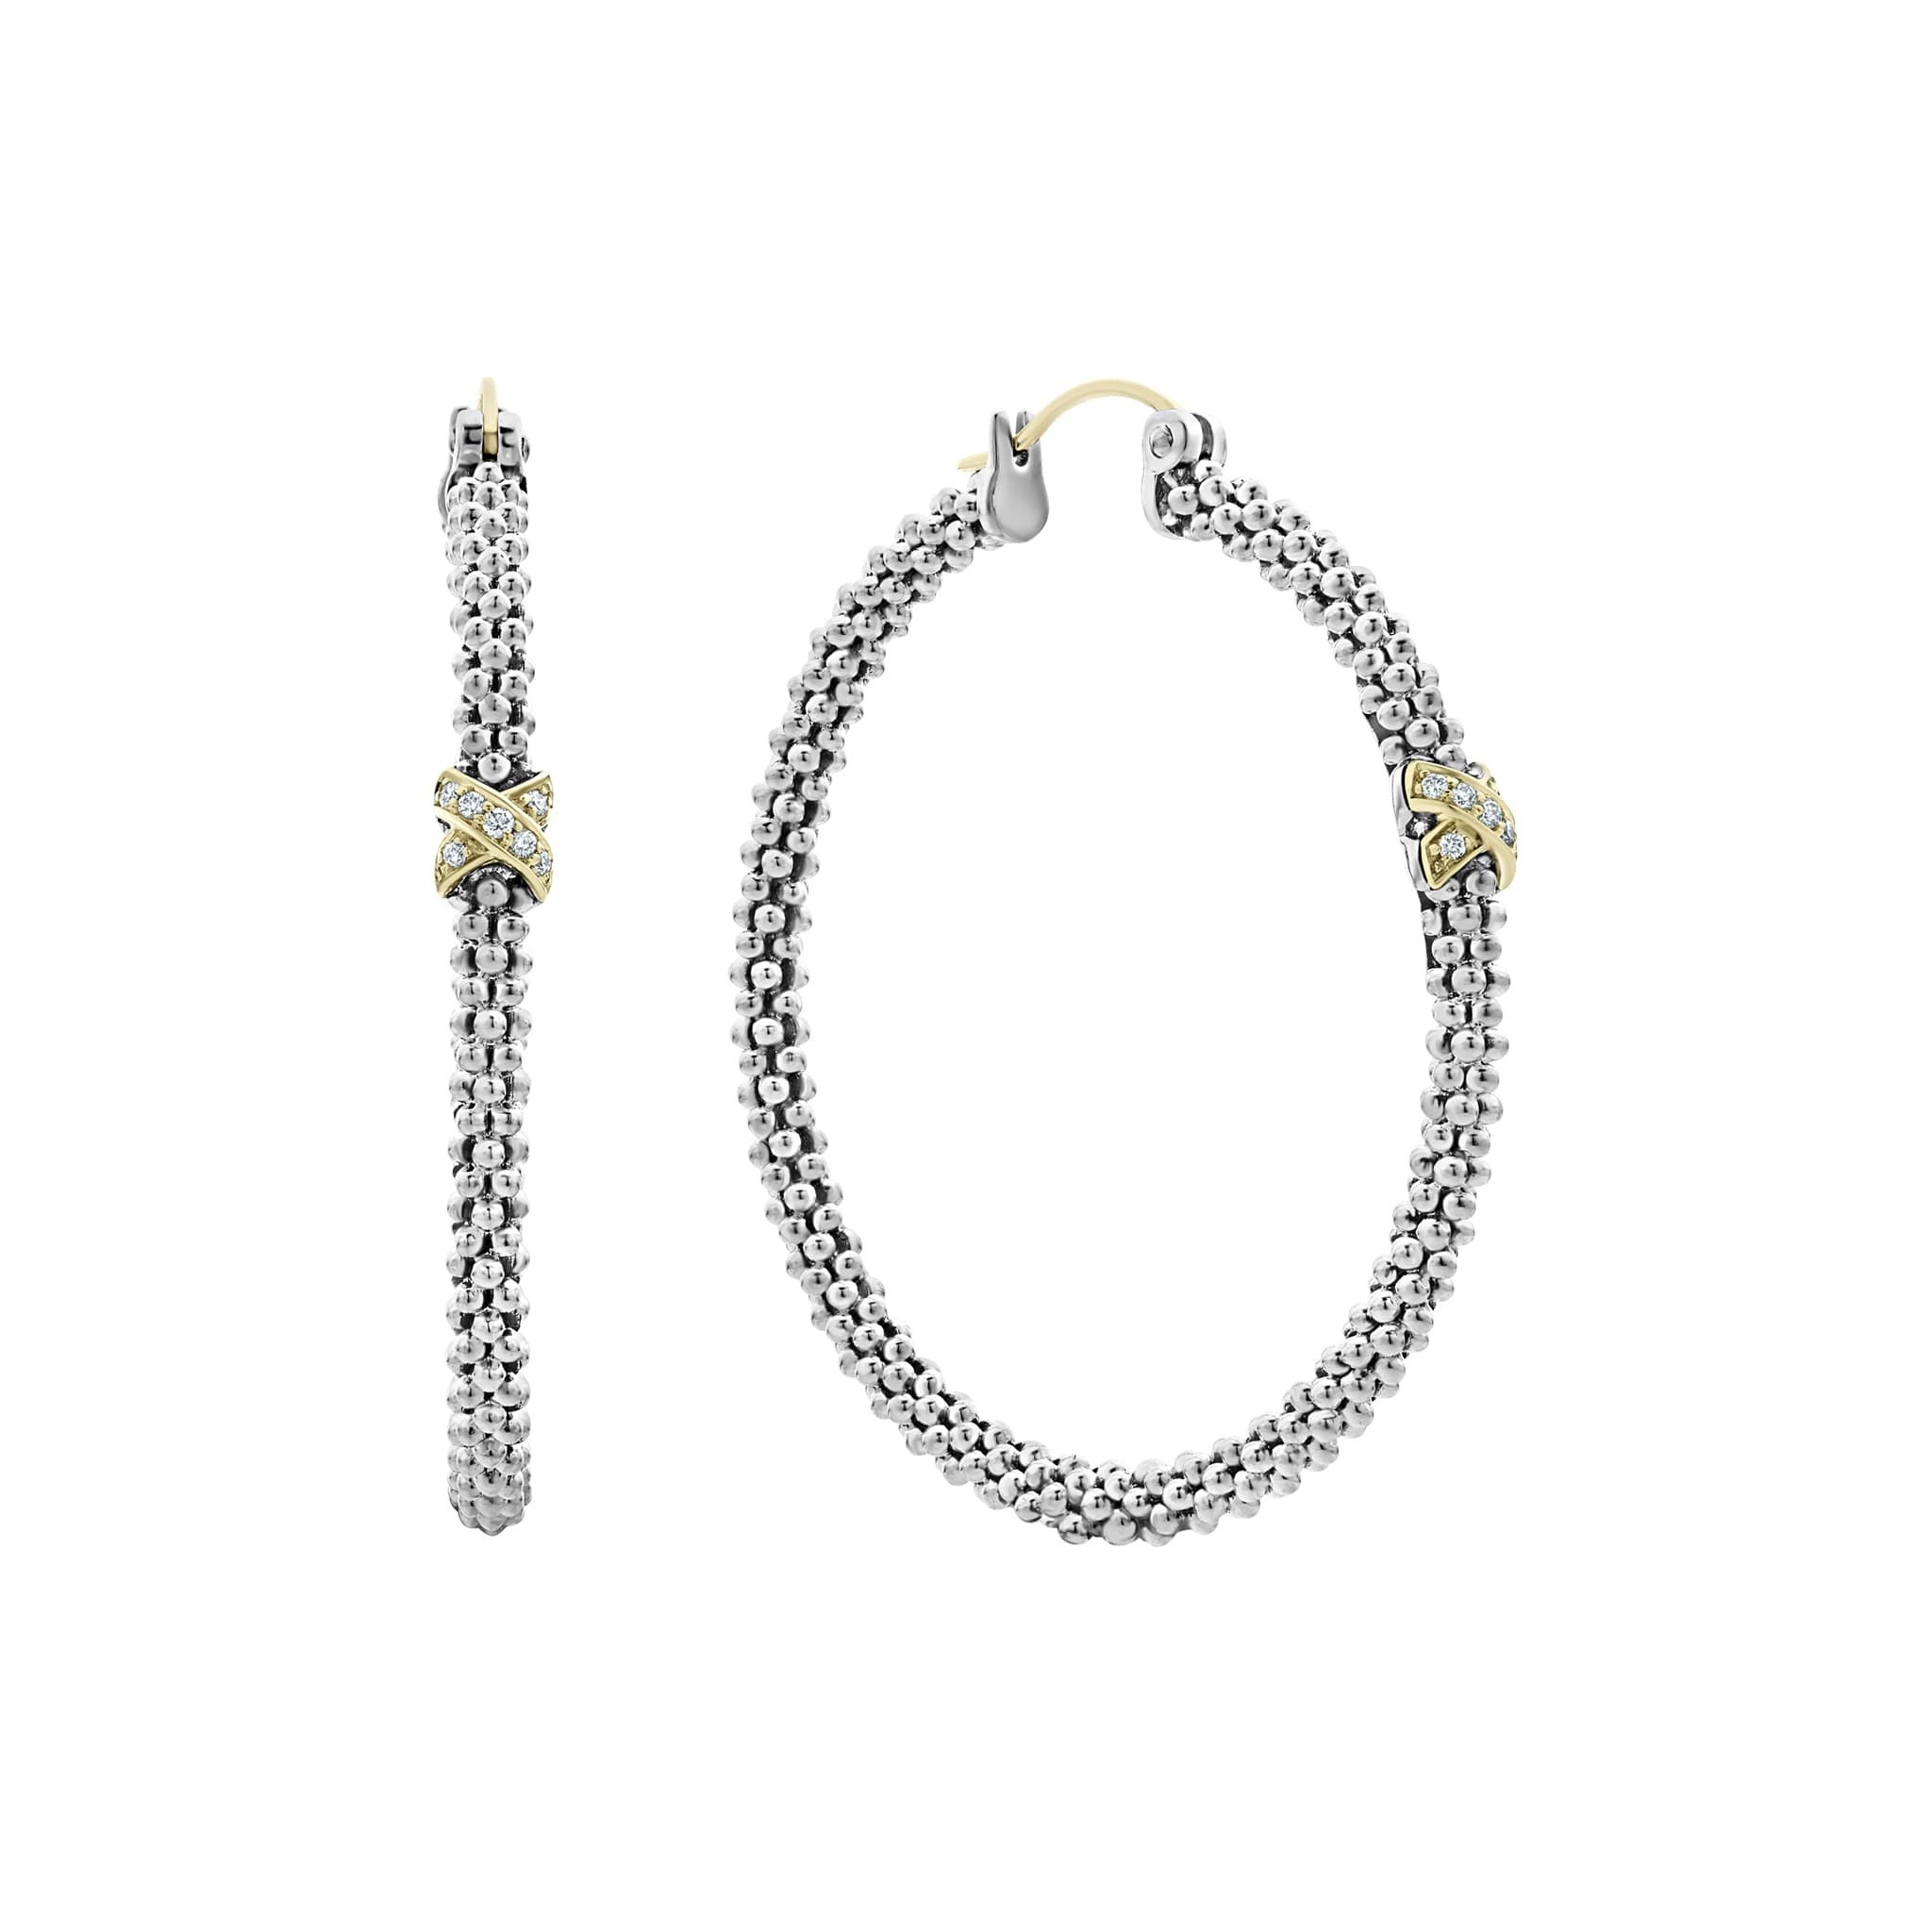 Diamond Hoop Earrings | Caviar Lux | LAGOS Jewelry